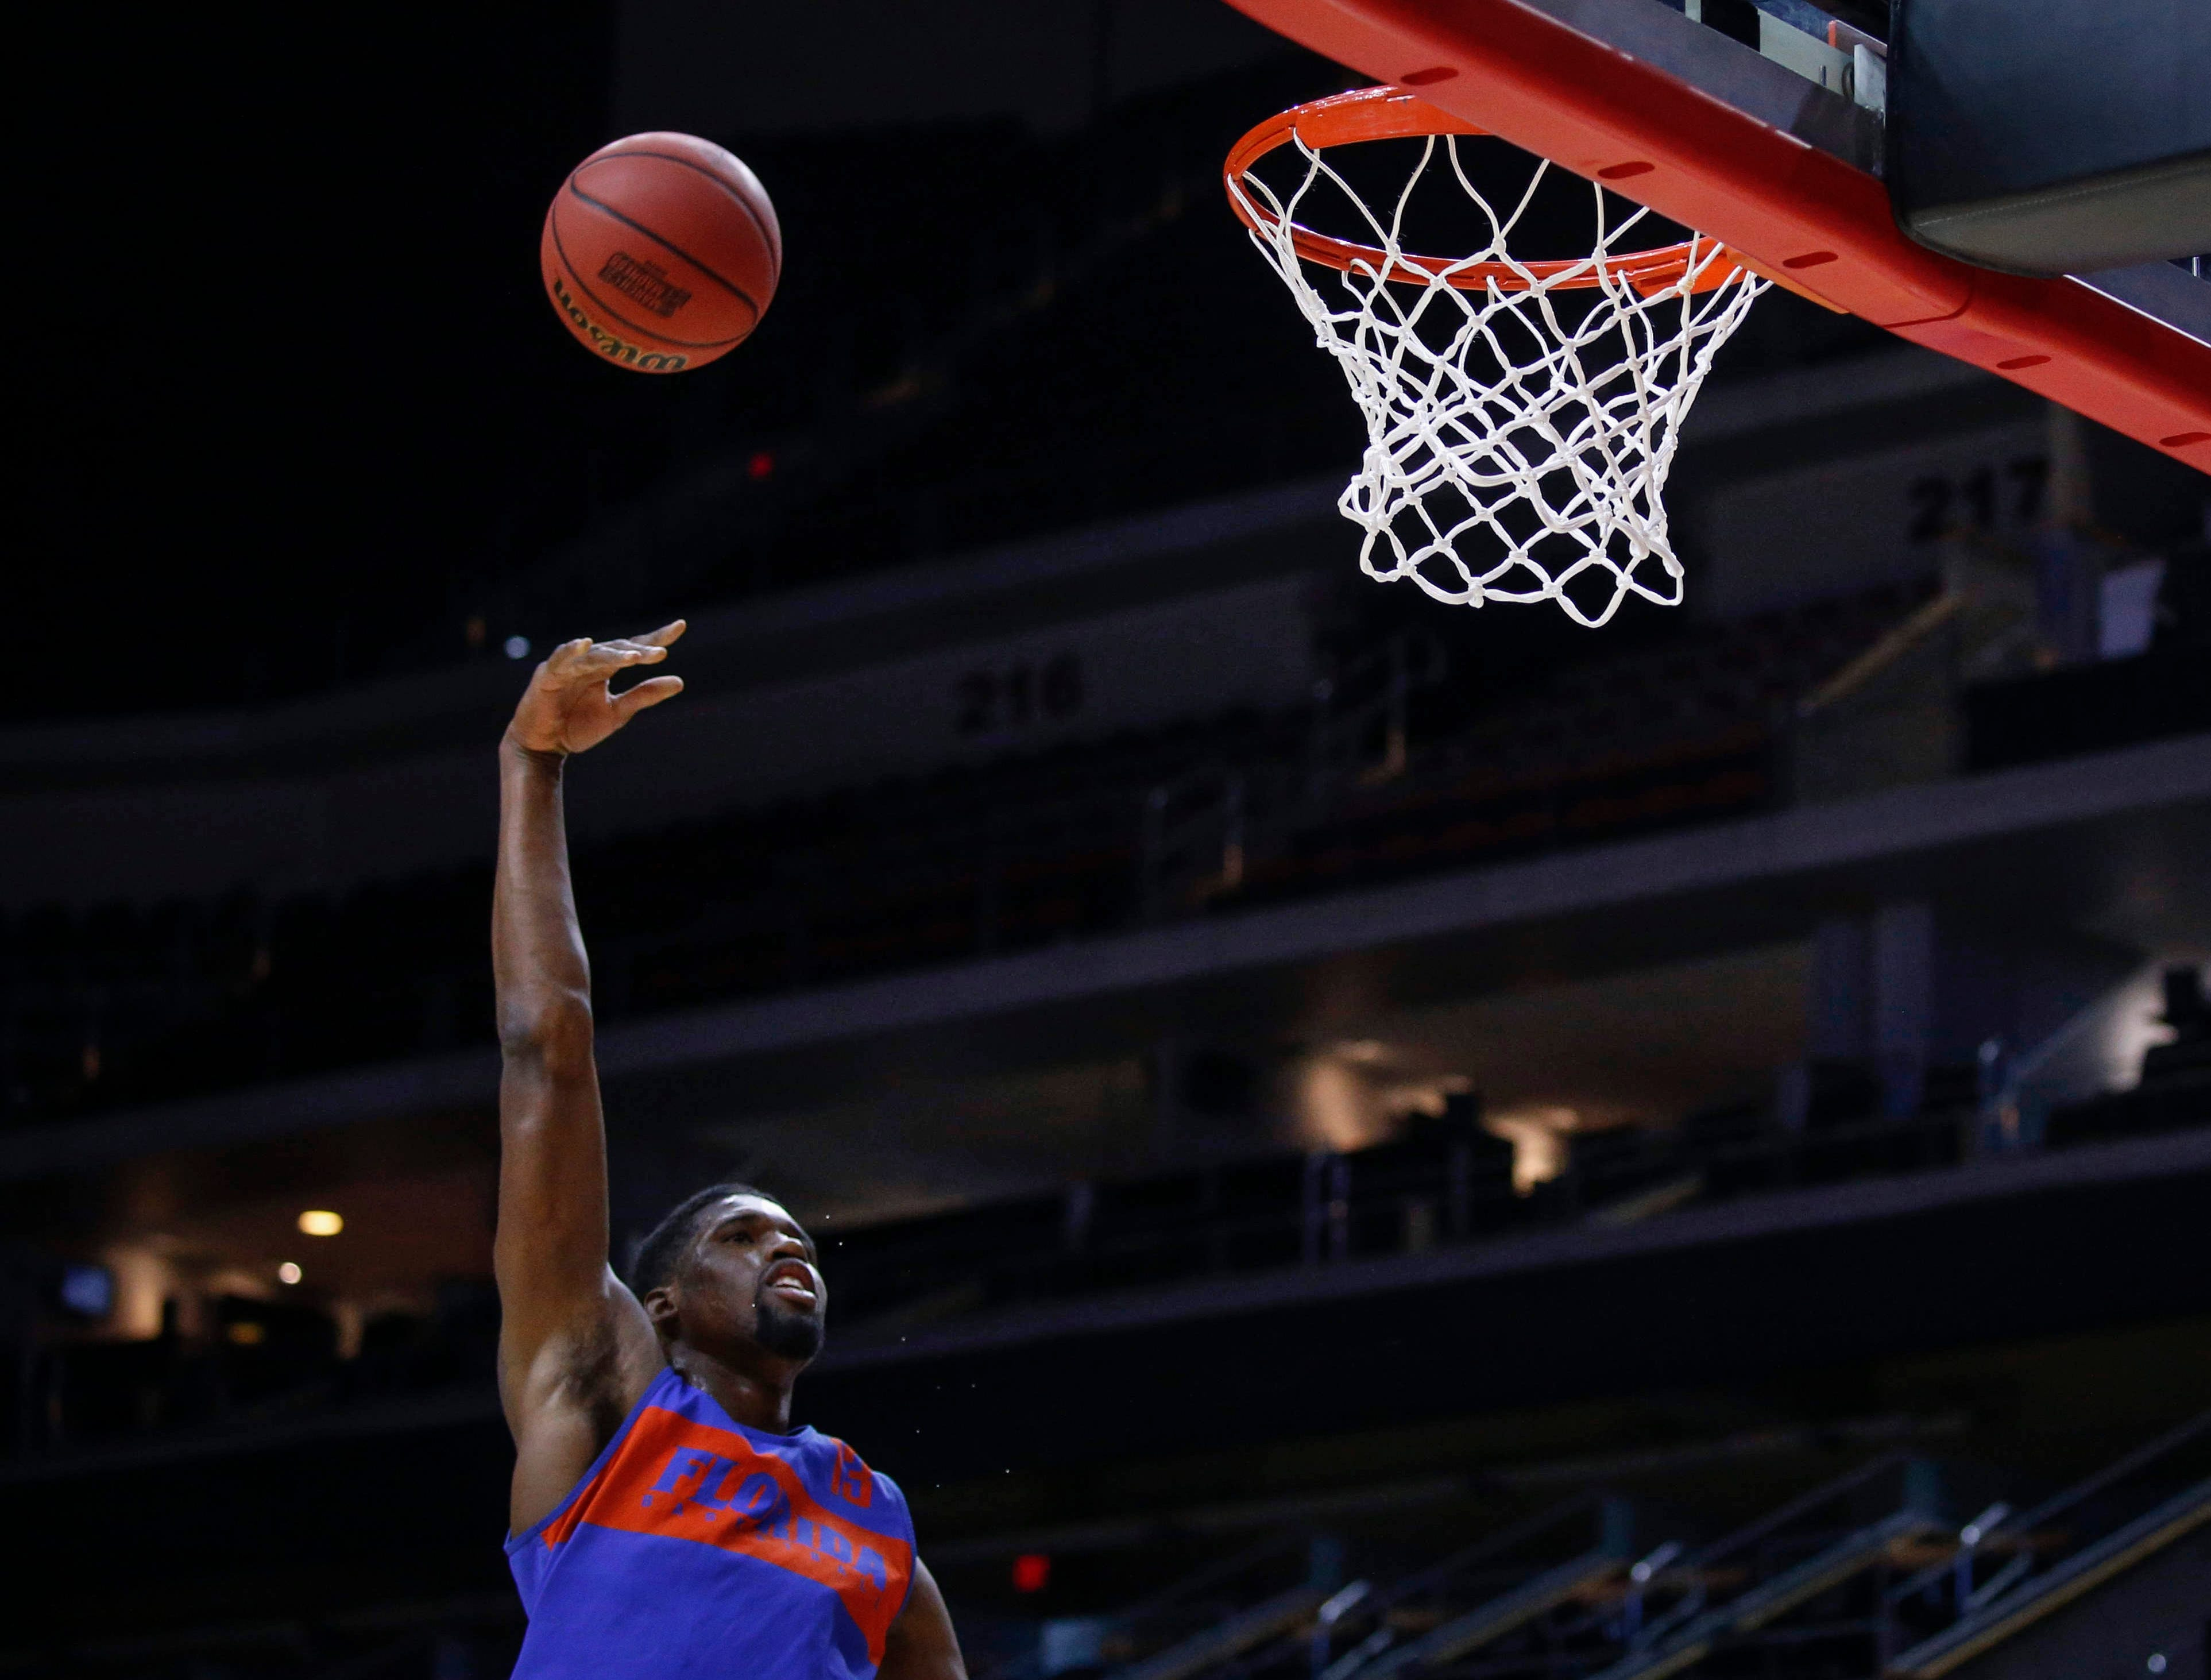 Florida senior Kevarrius Hayes hooks the ball into the basket during open practice on Wednesday, March 20, 2019, at Wells Fargo Arena in Des Moines, Iowa.